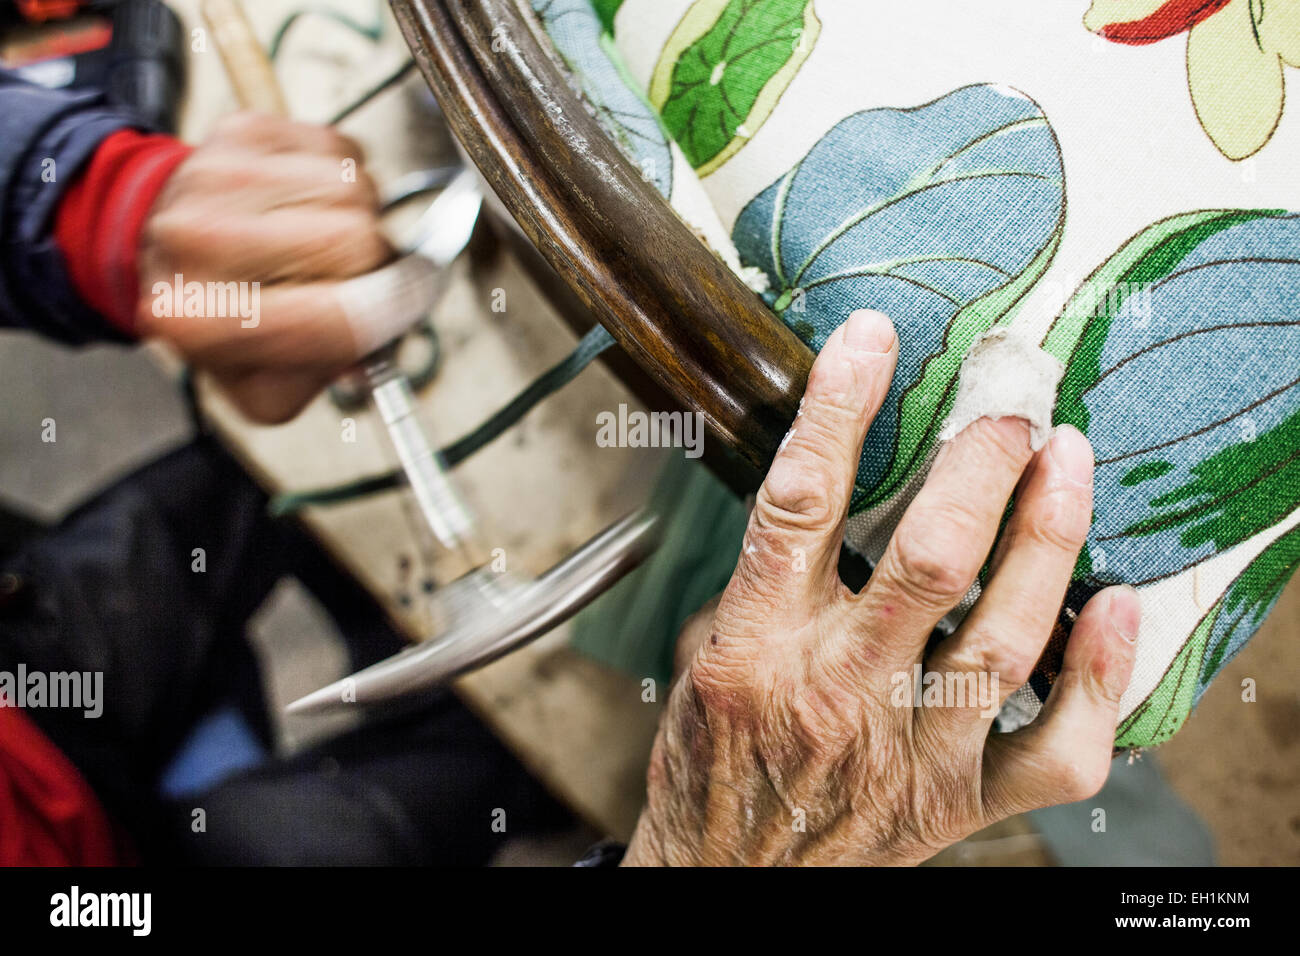 Cropped image of worker hammering chair in workshop - Stock Image